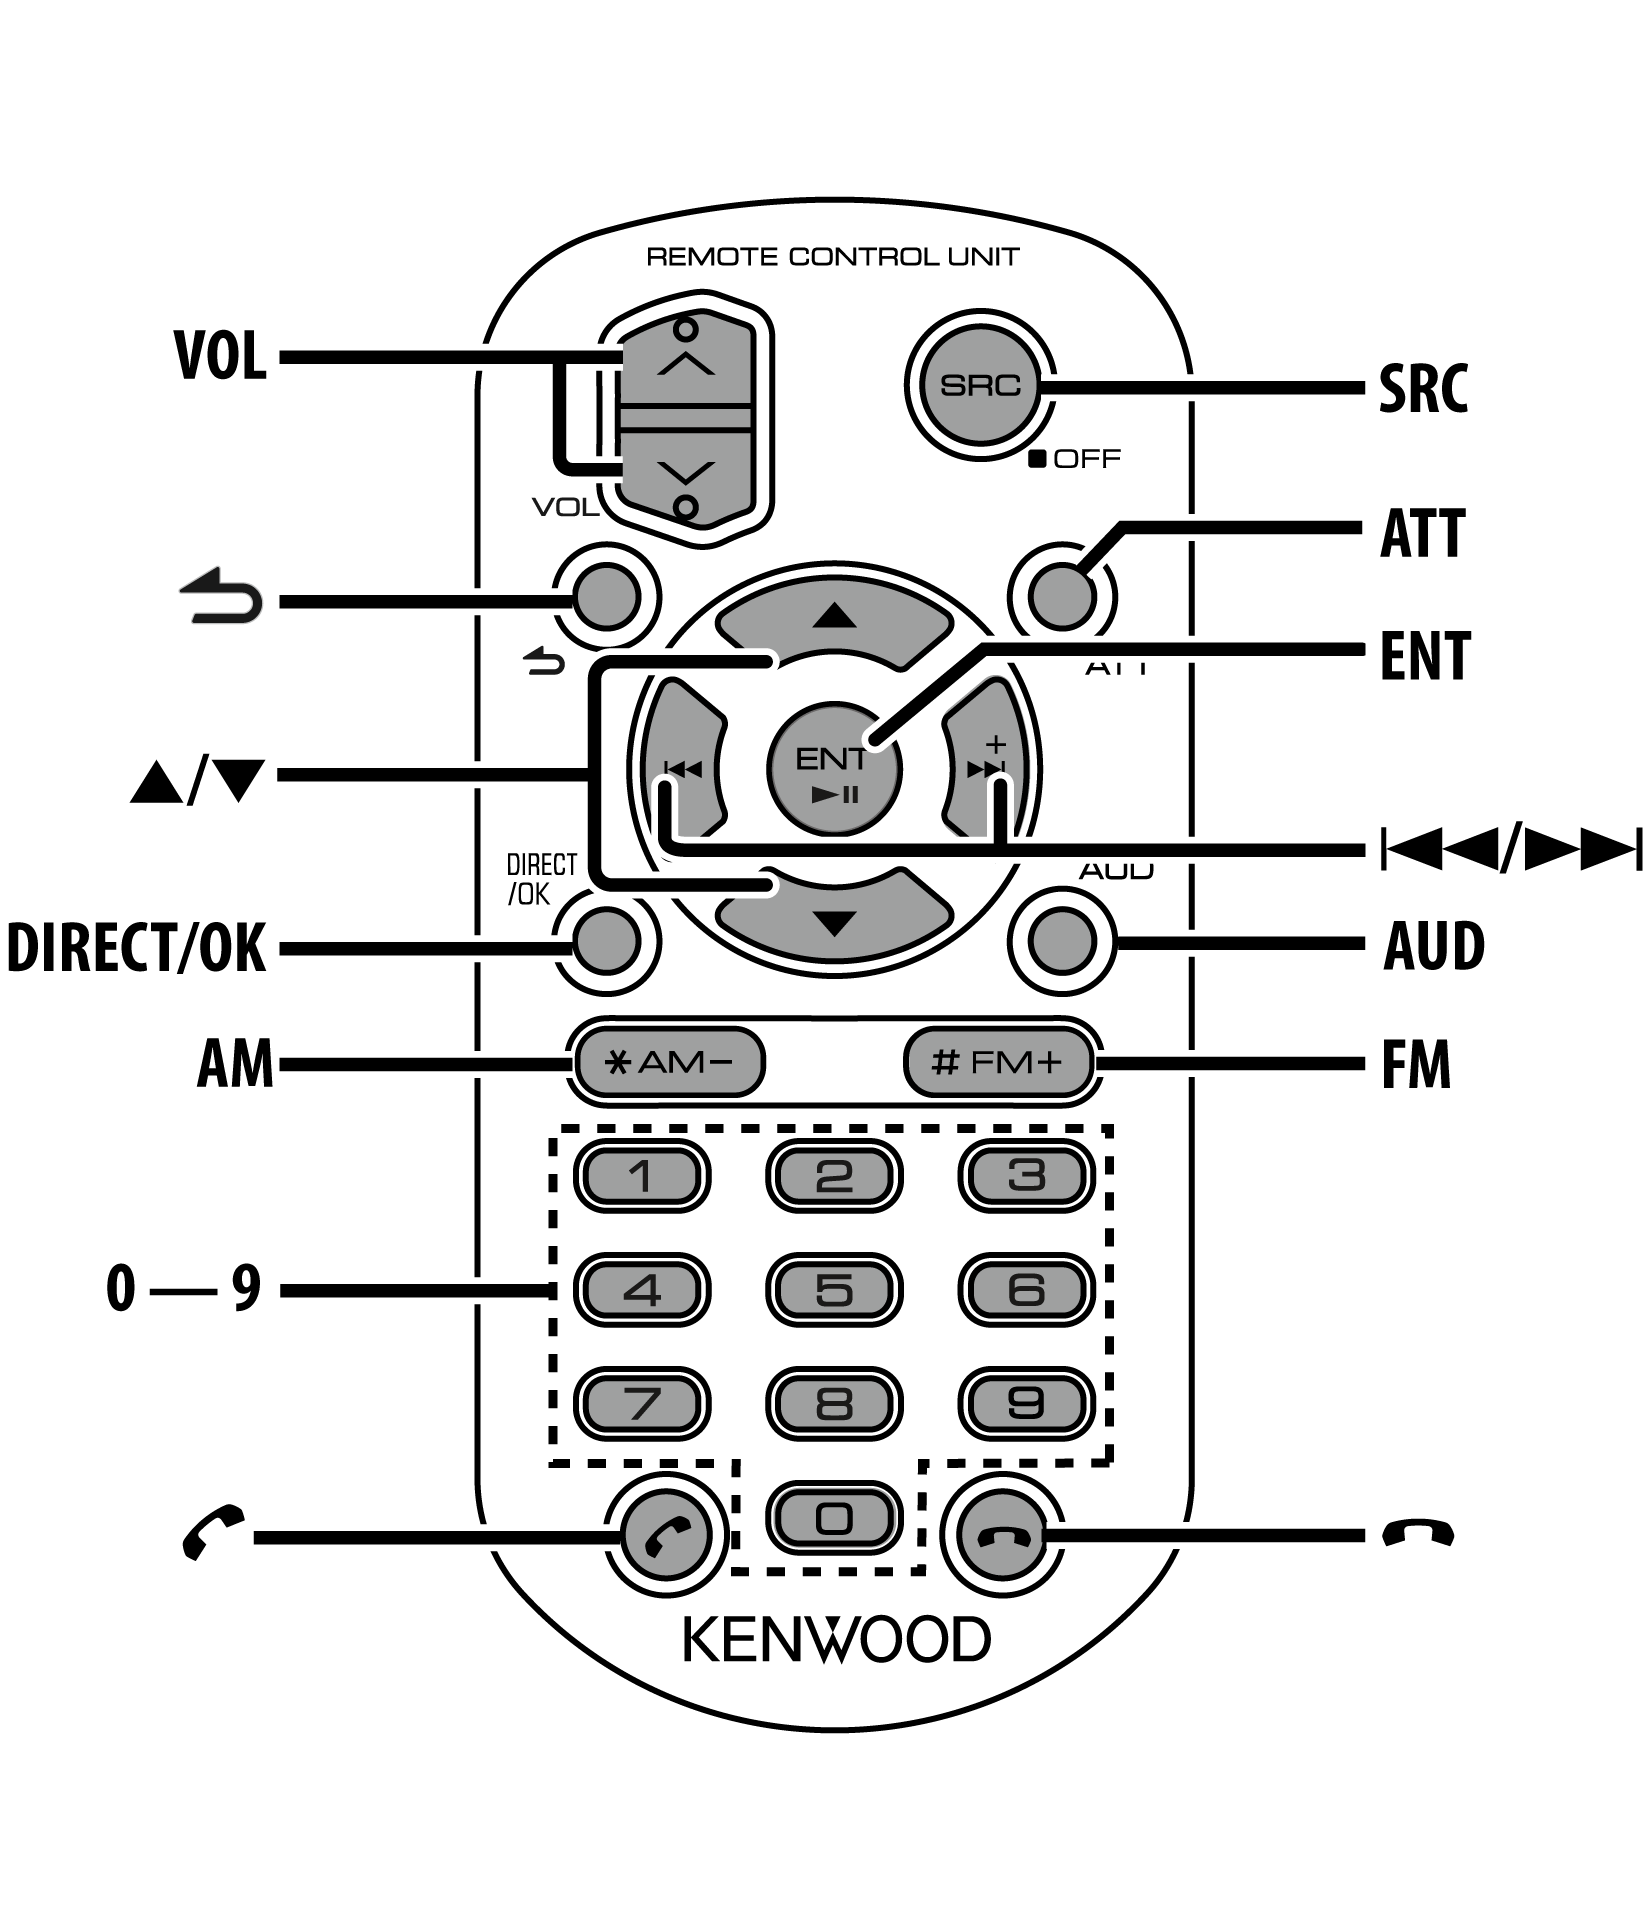 [DIAGRAM_1JK]  929F04 Car Stereo Wiring Diagram Kenwood Kdc Bt755hd | Wiring Library | Kenwood Kdc Bt555u Wiring Diagram Cd Reciver Model |  | Wiring Library